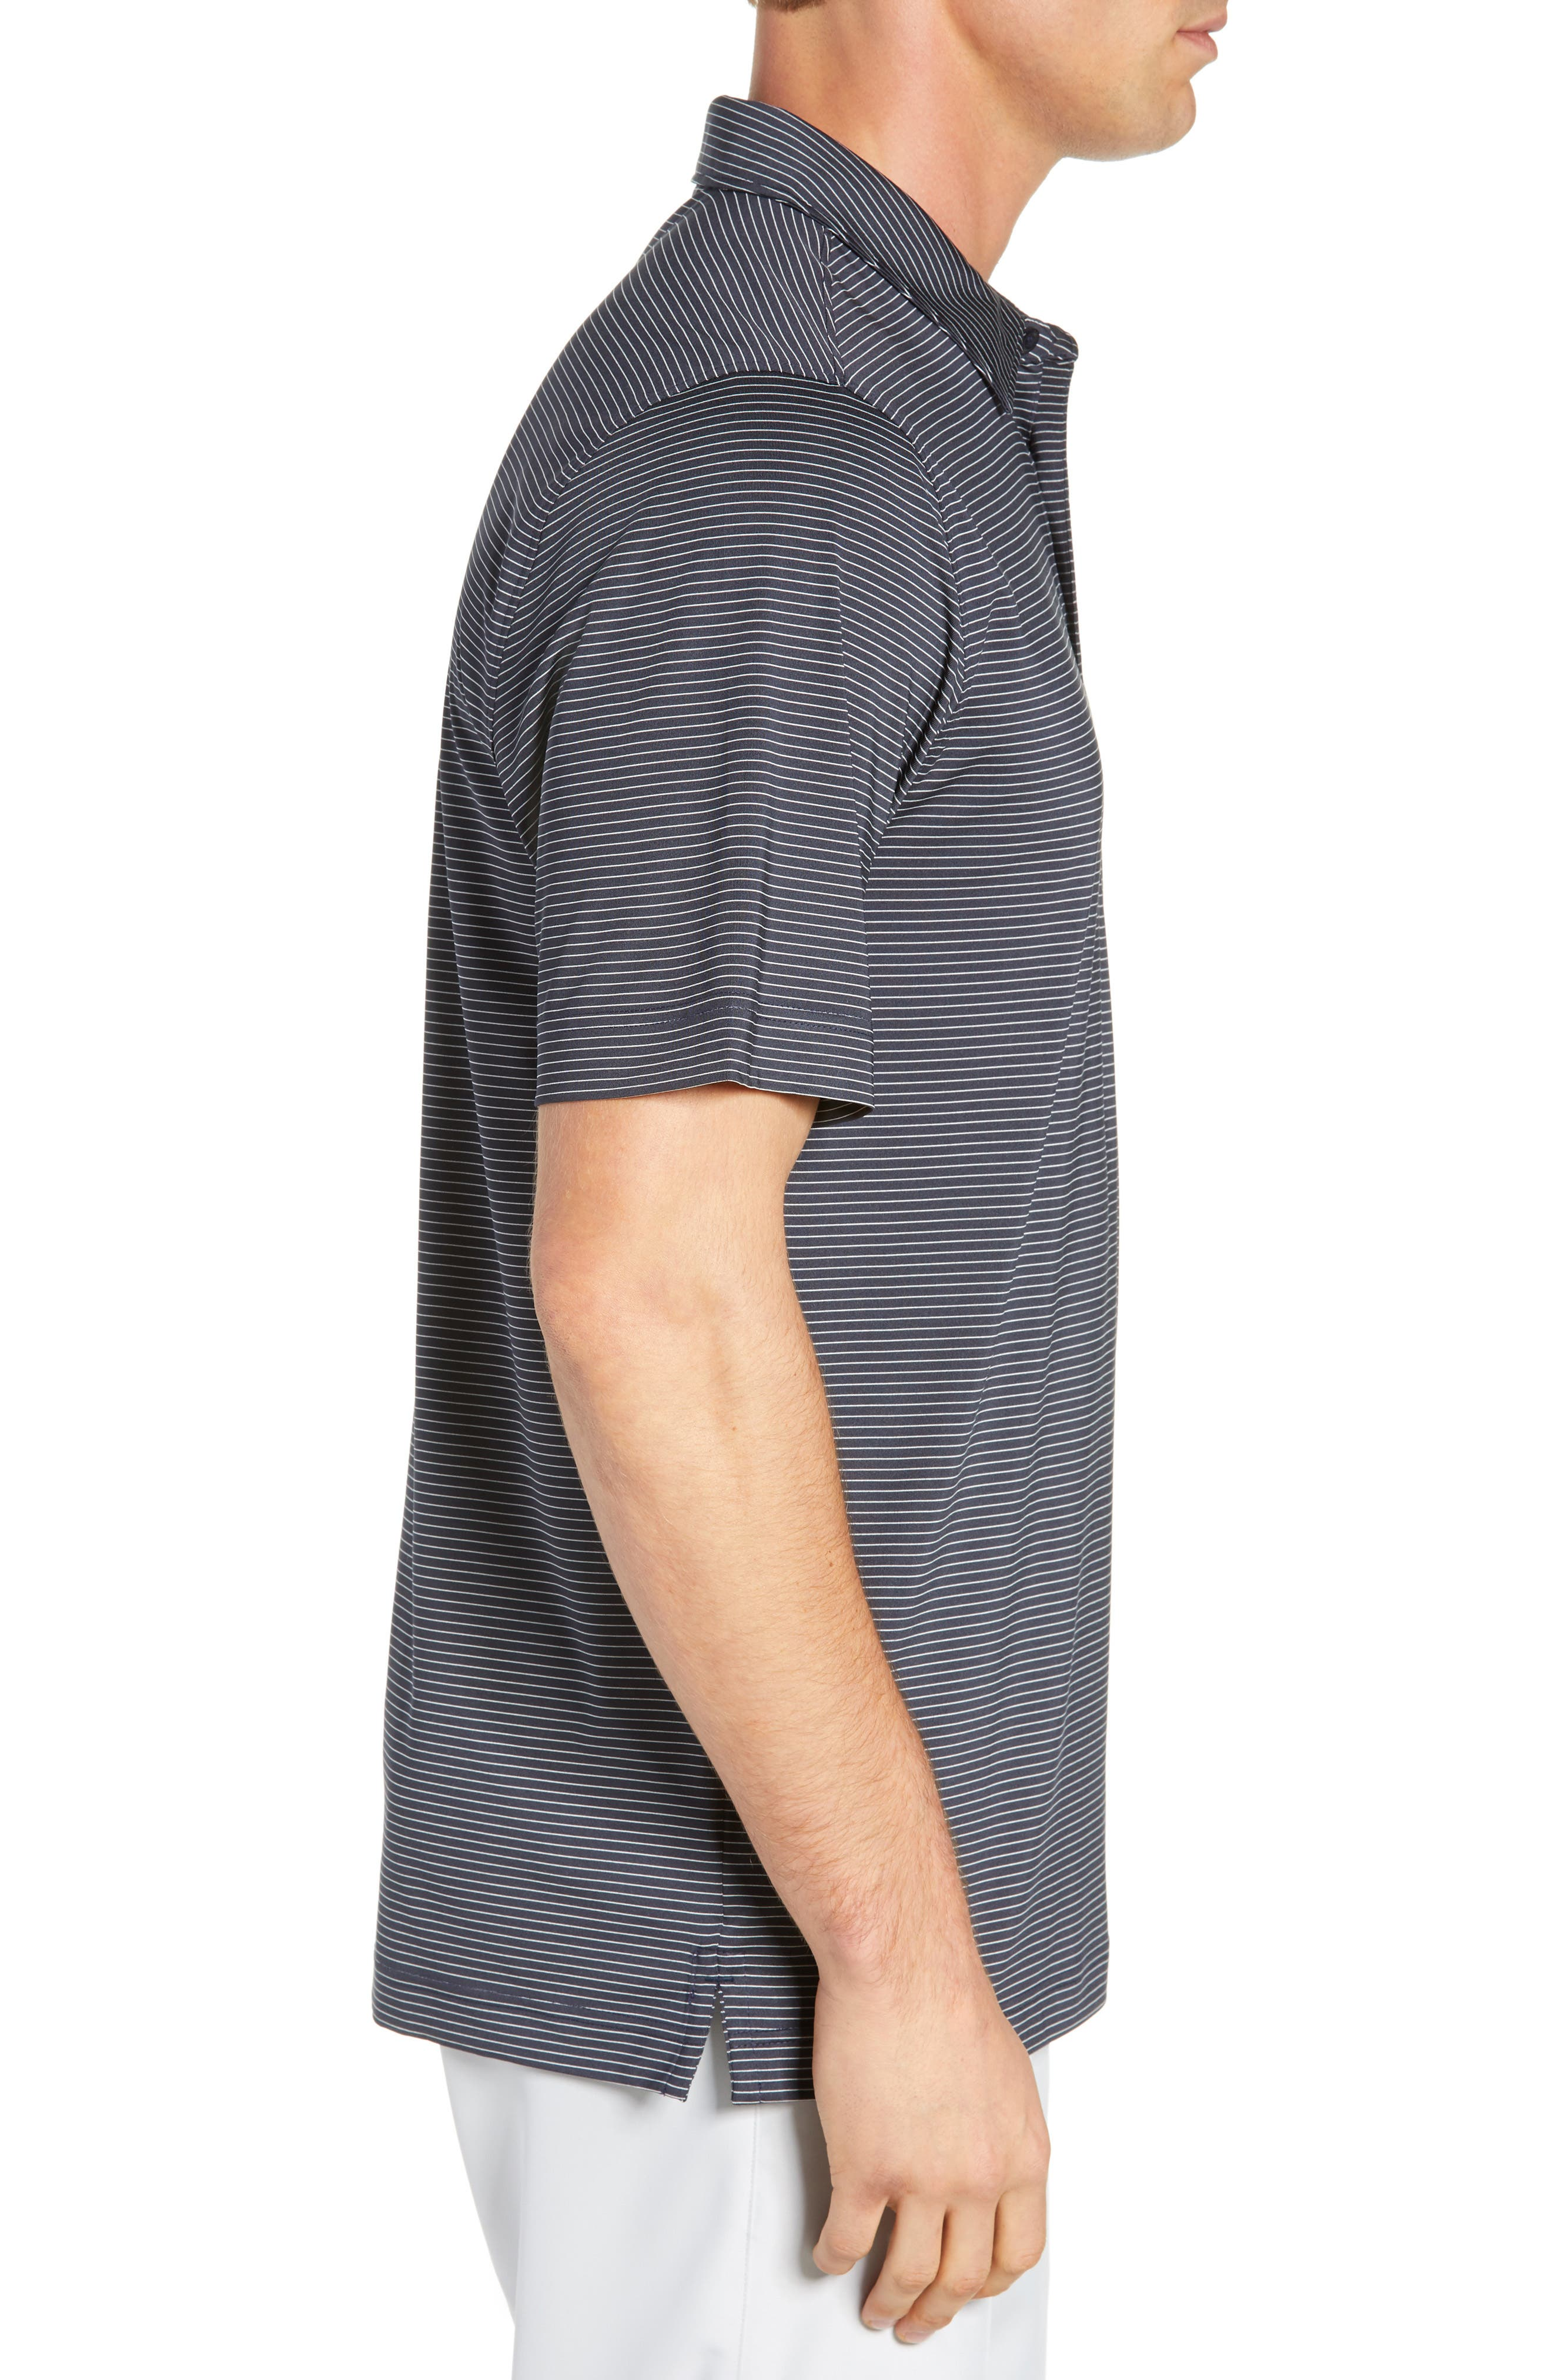 CUTTER & BUCK,                             Prevail Regular Fit Stripe Polo,                             Alternate thumbnail 3, color,                             LIBERTY NAVY